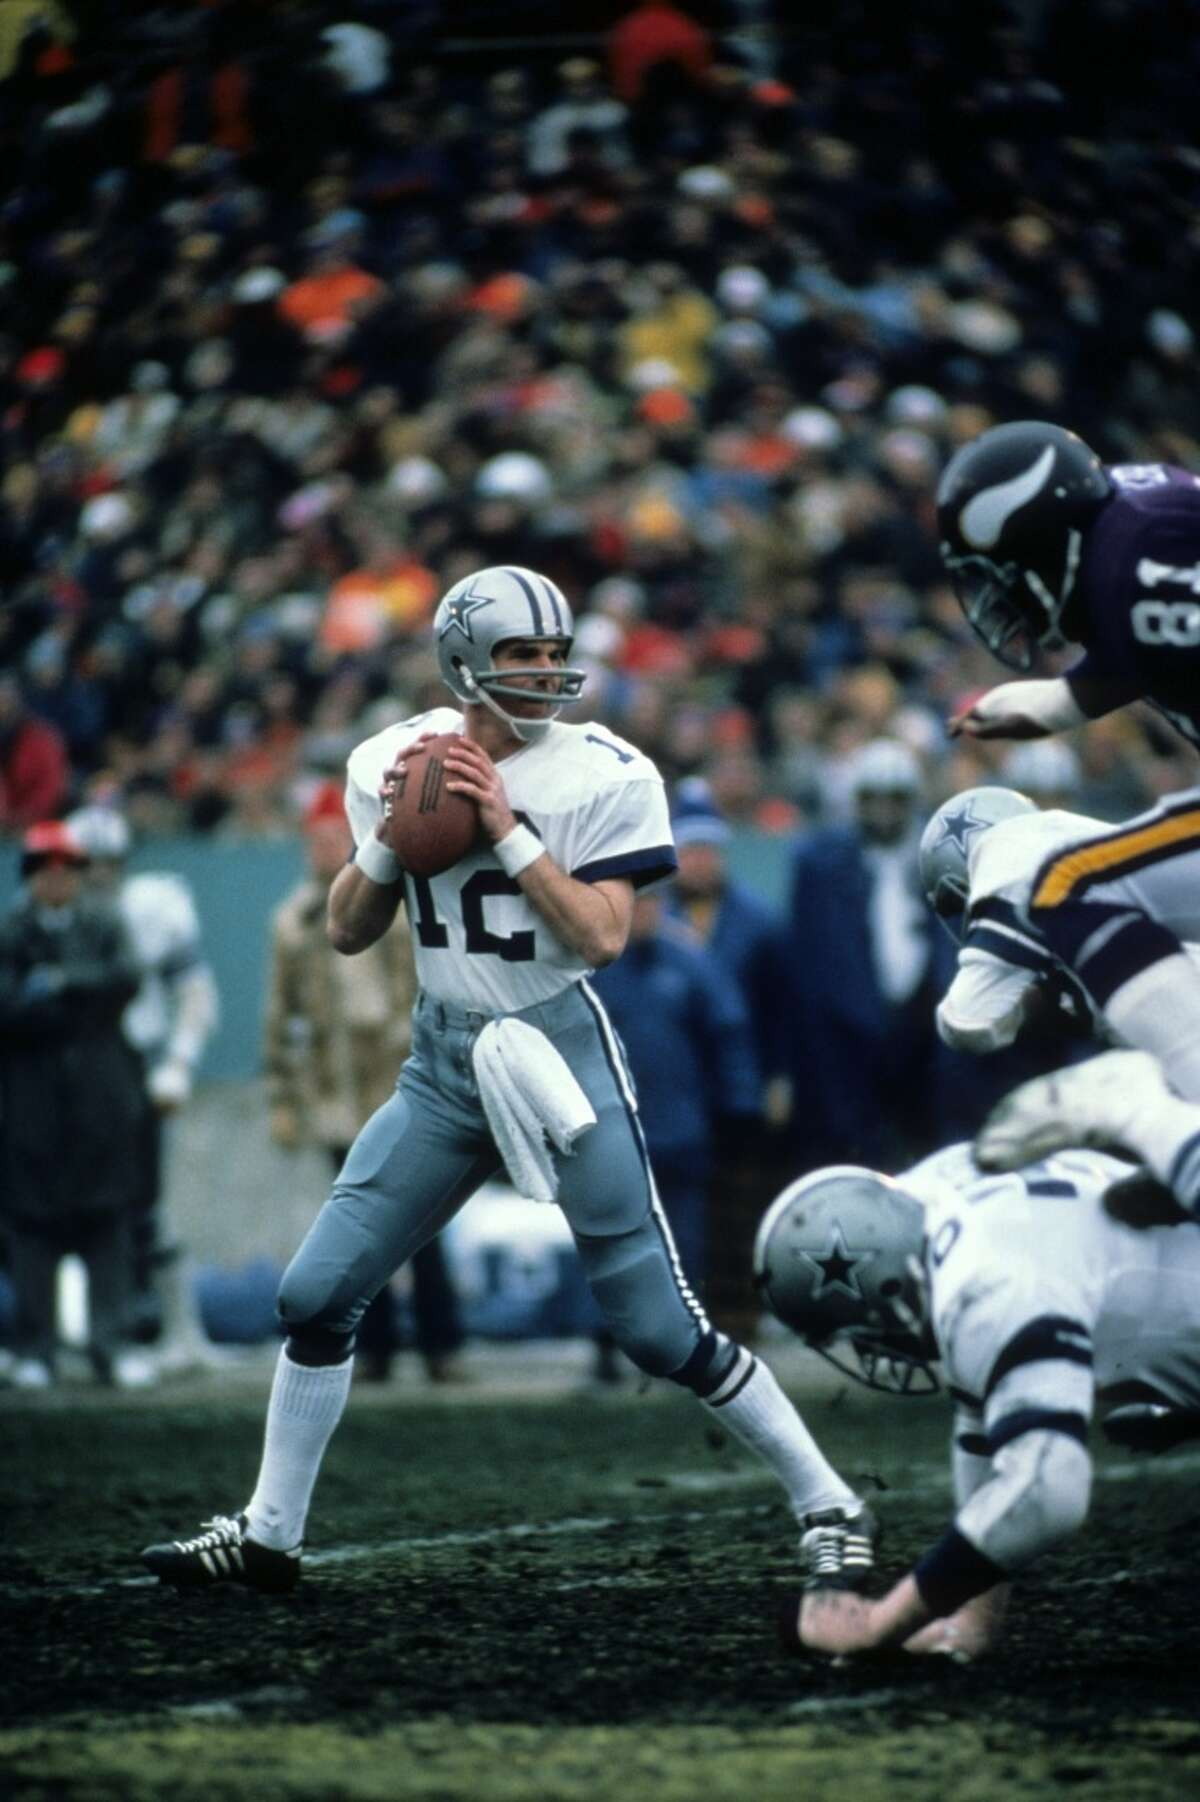 """Dec. 28, 1975: Cowboys 17, Vikings 14 The NFL Hail Mary was born on this day, with Dallas' Roger Staubach finding Drew Pearson from 50 yards out on a desperation heave with 24 seconds left in an NFC divisional playoff game. Vikings fans to this day claim Pearson interfered with cornerback Nate Wright. After the game, Staubach said """"I closed my eyes and said a Hail Mary,"""" bringing the term into the football lexicon to stay."""